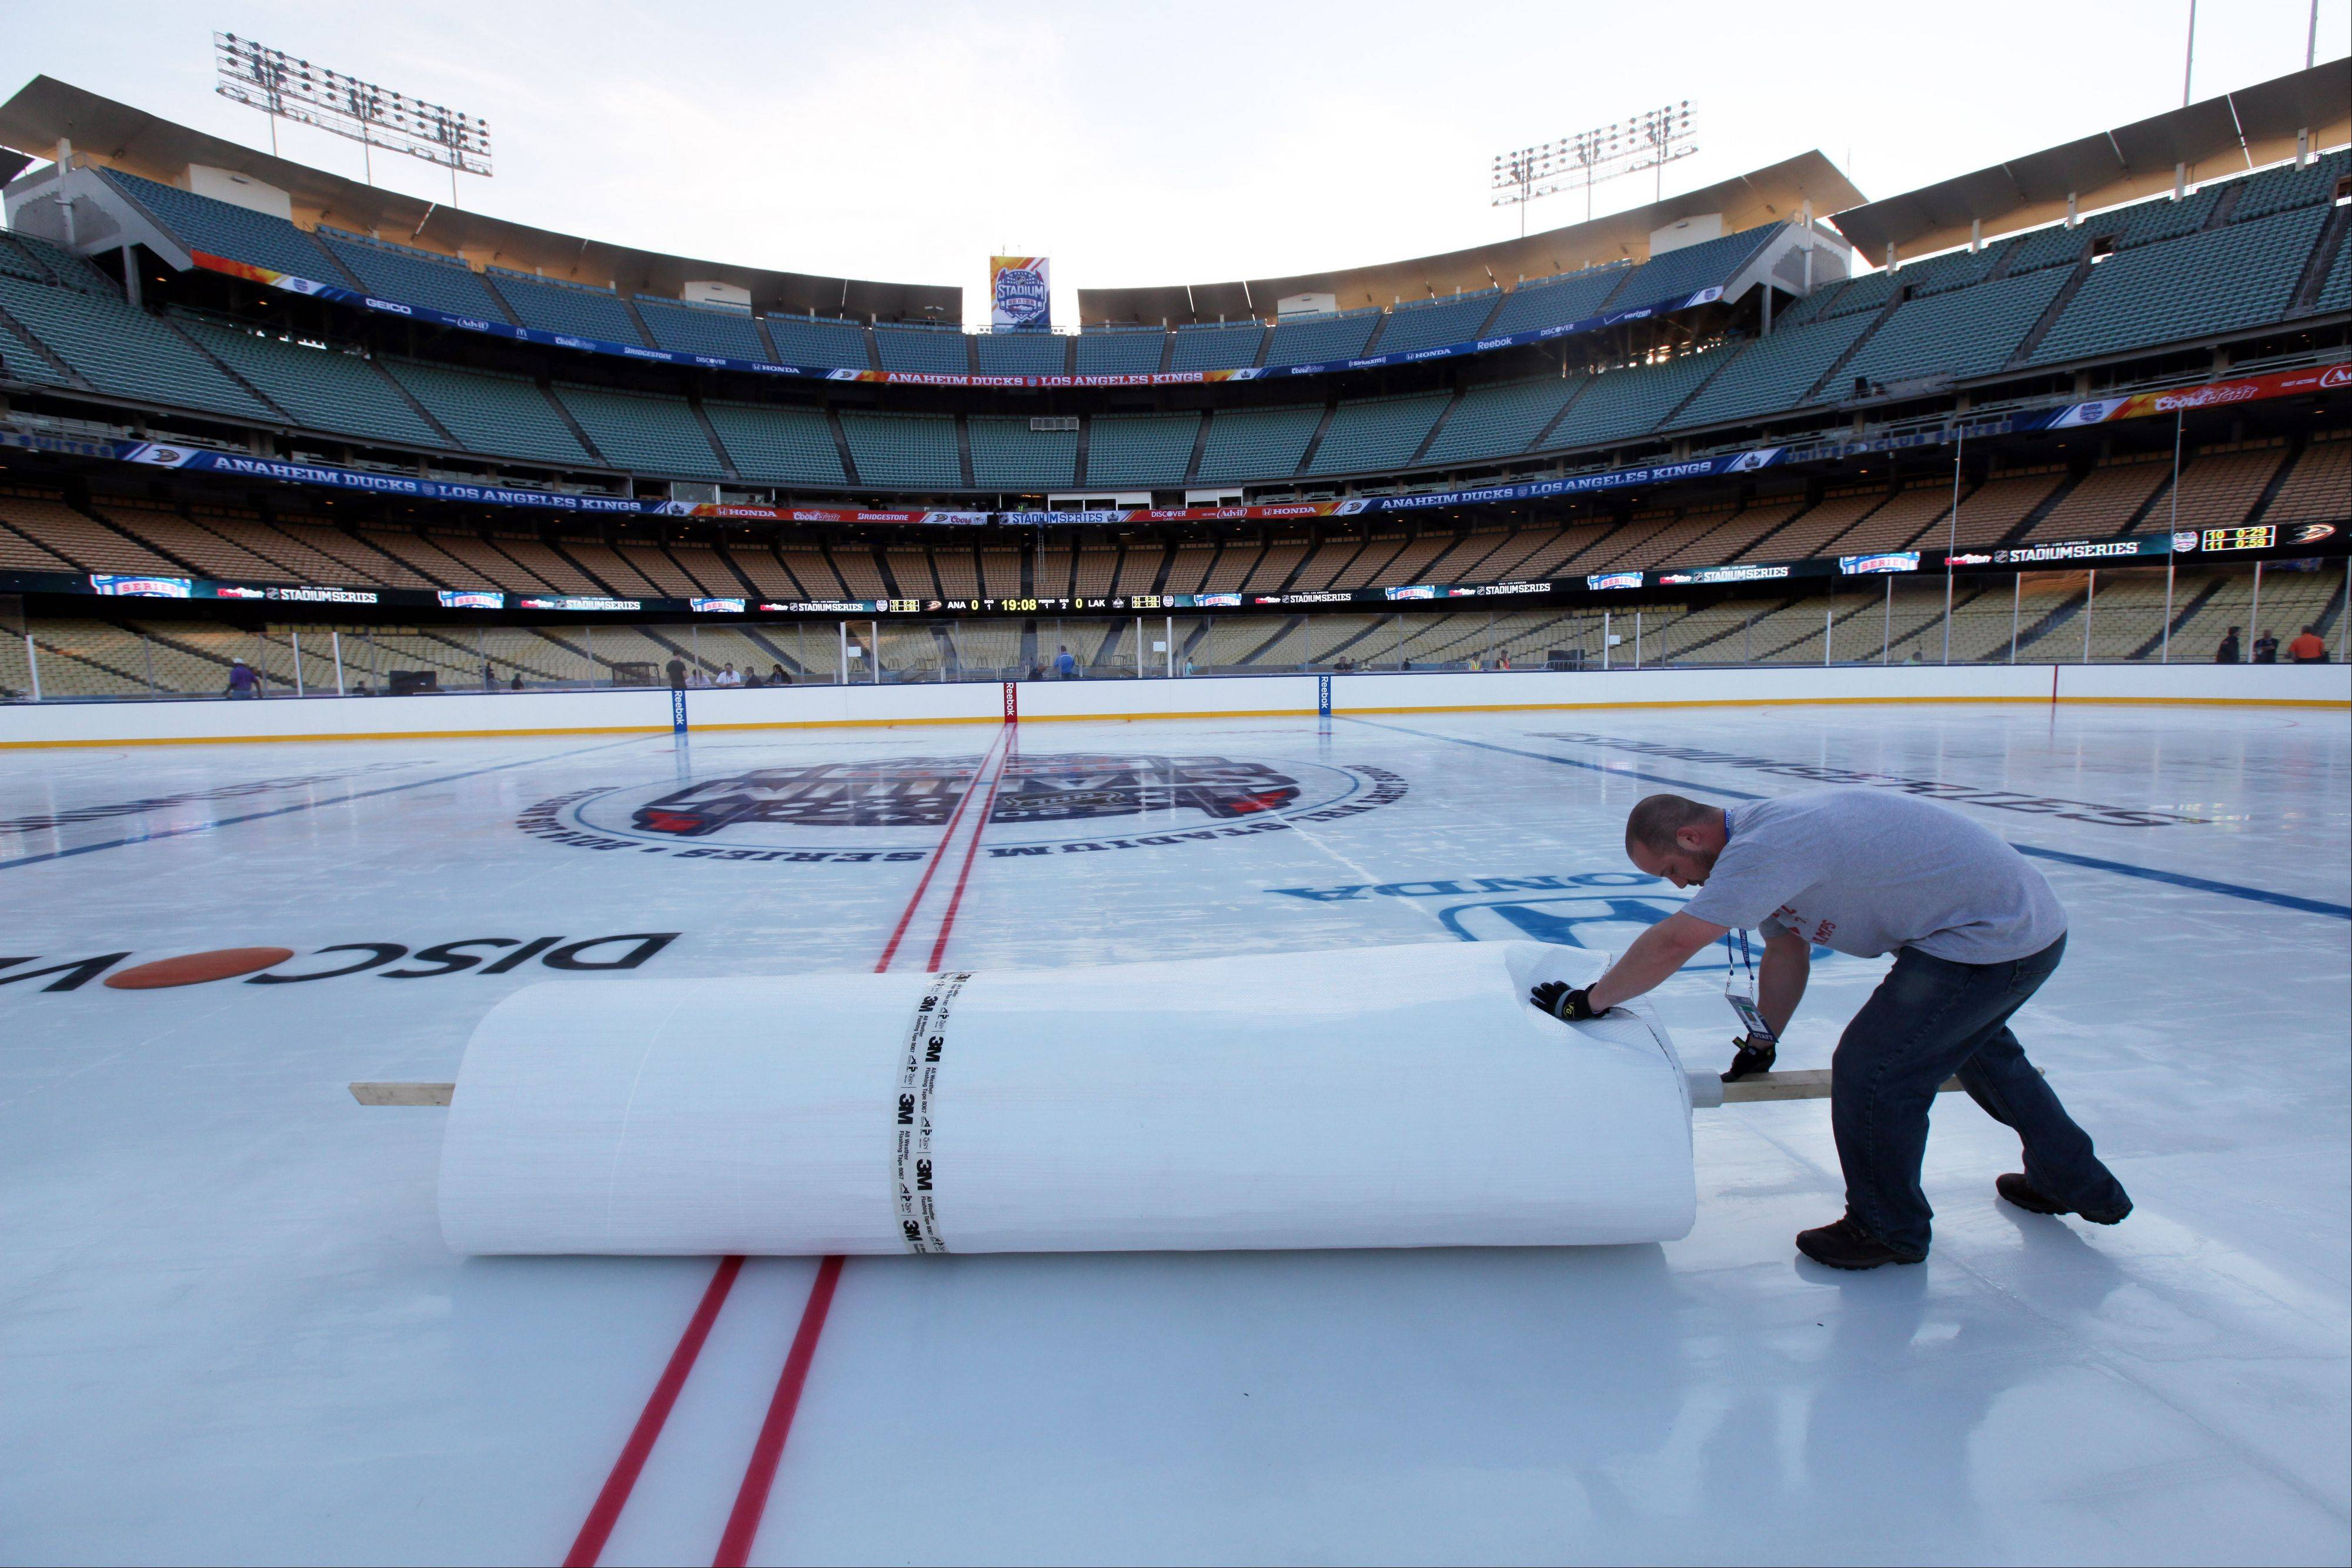 A worker rolls up mylar that protected a hockey rink at Dodger Stadium from daytime temperatures in the high 70s Fahrenheit, as preparations continue for the upcoming 2014 NHL Stadium Series hockey game in Los Angeles, Wednesday, Jan. 22, 2014. The Los Angeles Kings and Anaheim Ducks will play outdoors at Dodger Stadium next Saturday, Jan. 25th.